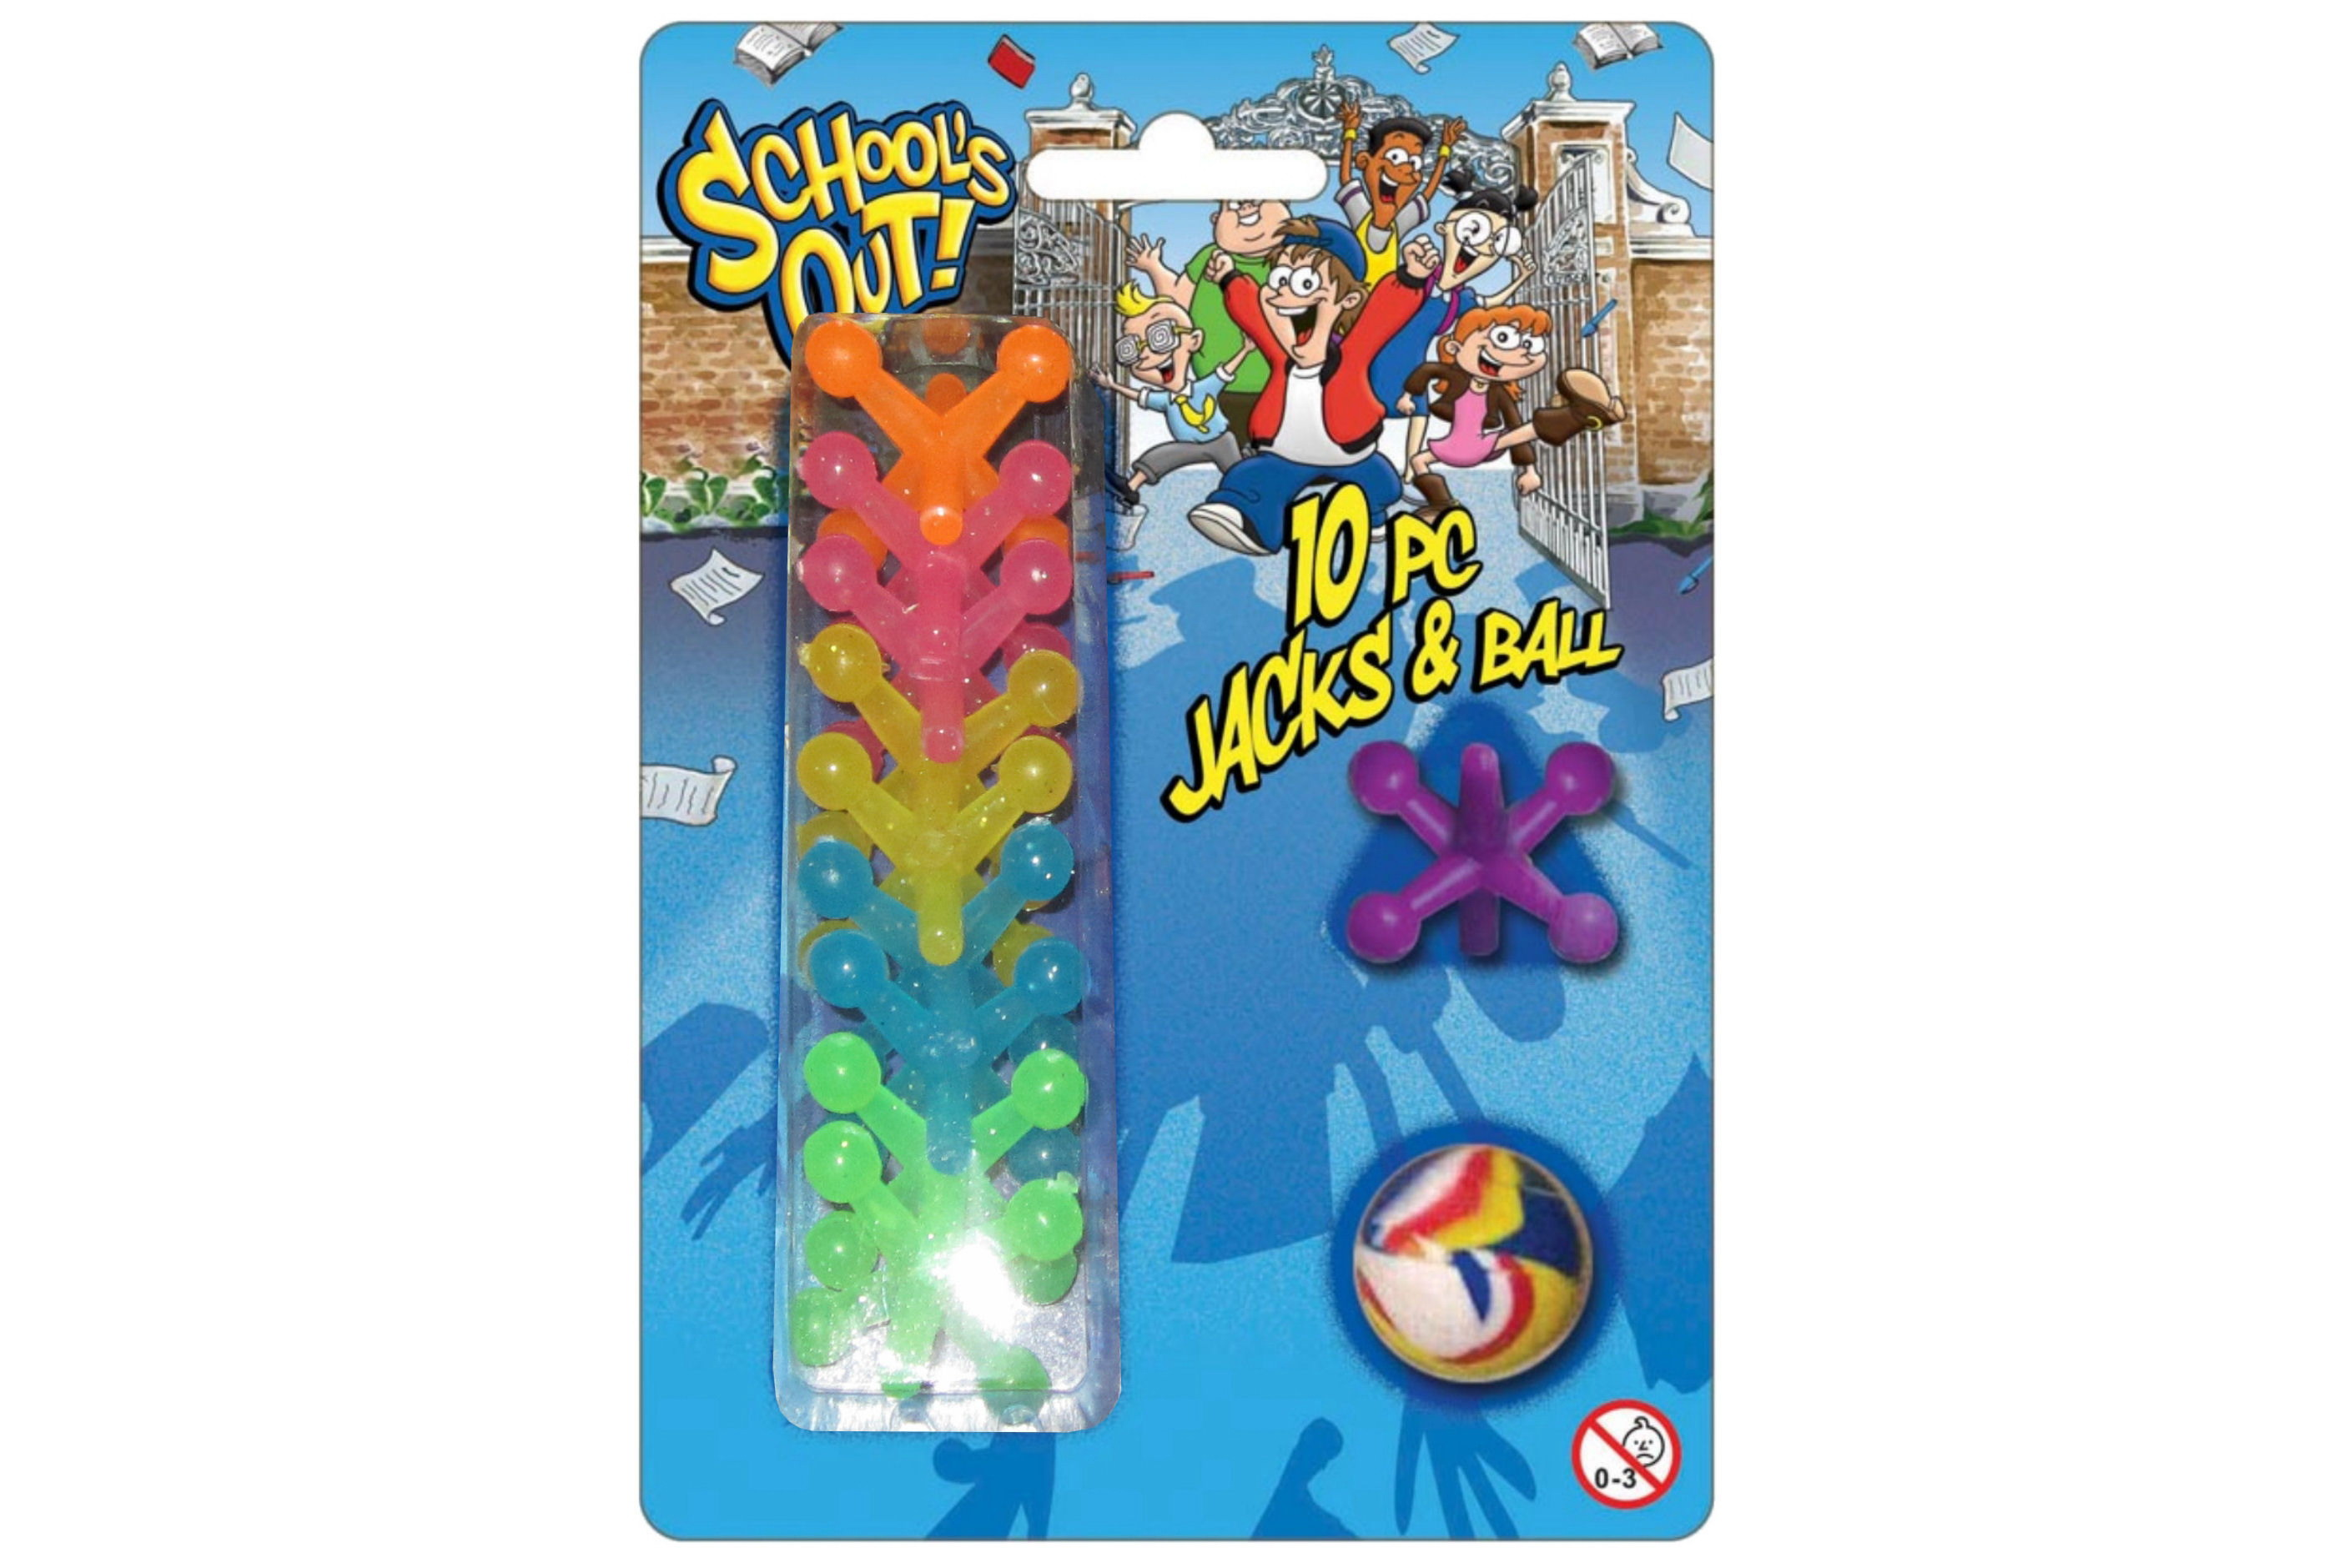 """10pc Jacks & Ball On Blistercard """"Schools Out"""""""